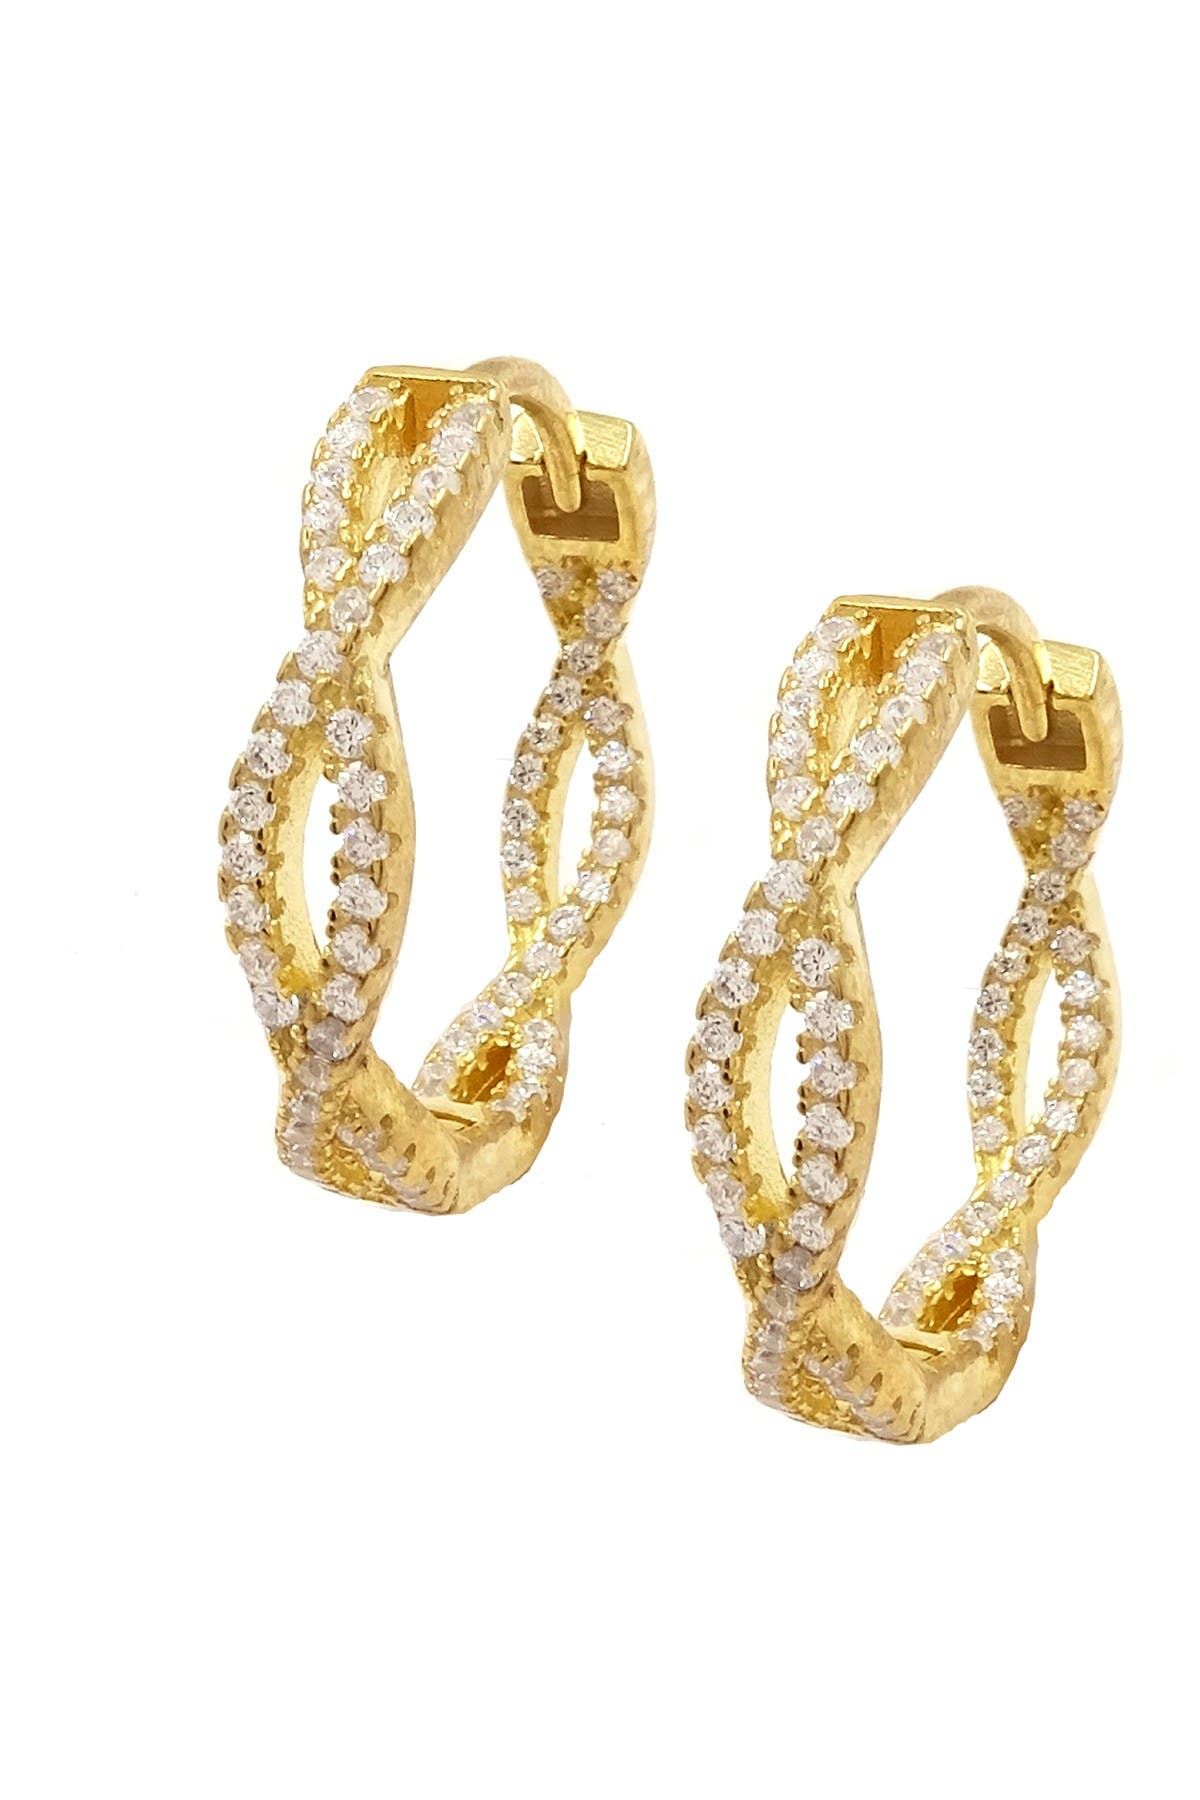 Image of Savvy Cie 18K Gold Vermeil CZ Braided Hoop Earrings